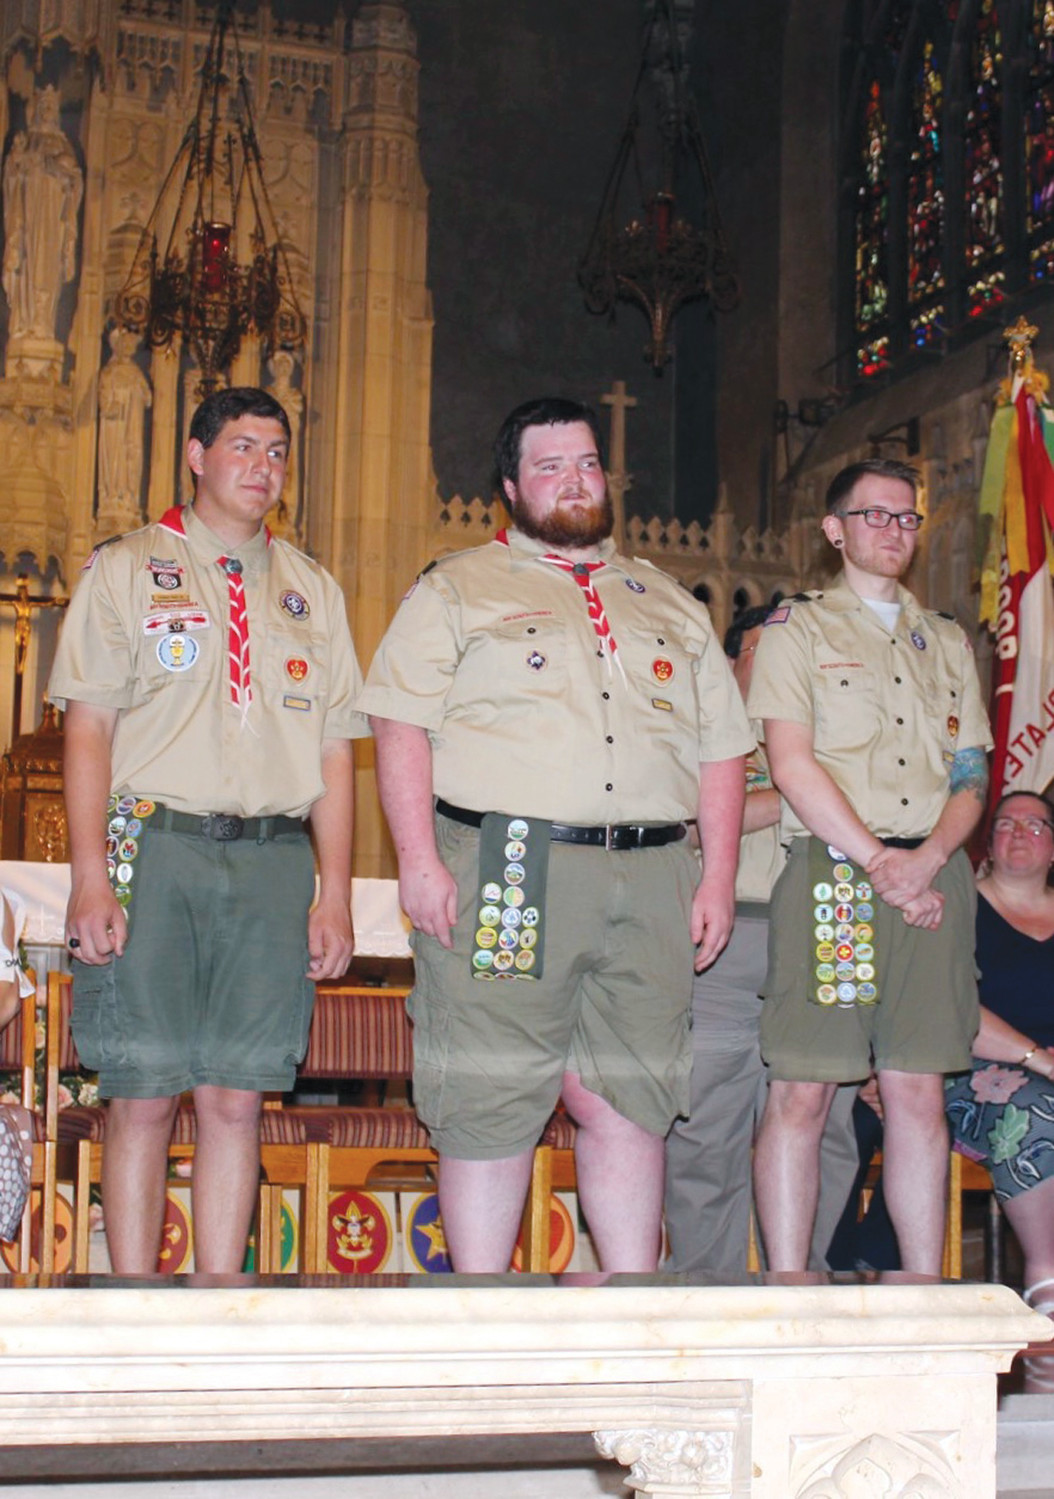 THE HONORED: Thomas Yakey Jr., Michael Stubbs, and James Stubbs stand on stage while receiving their Eagle Scout honors last week.